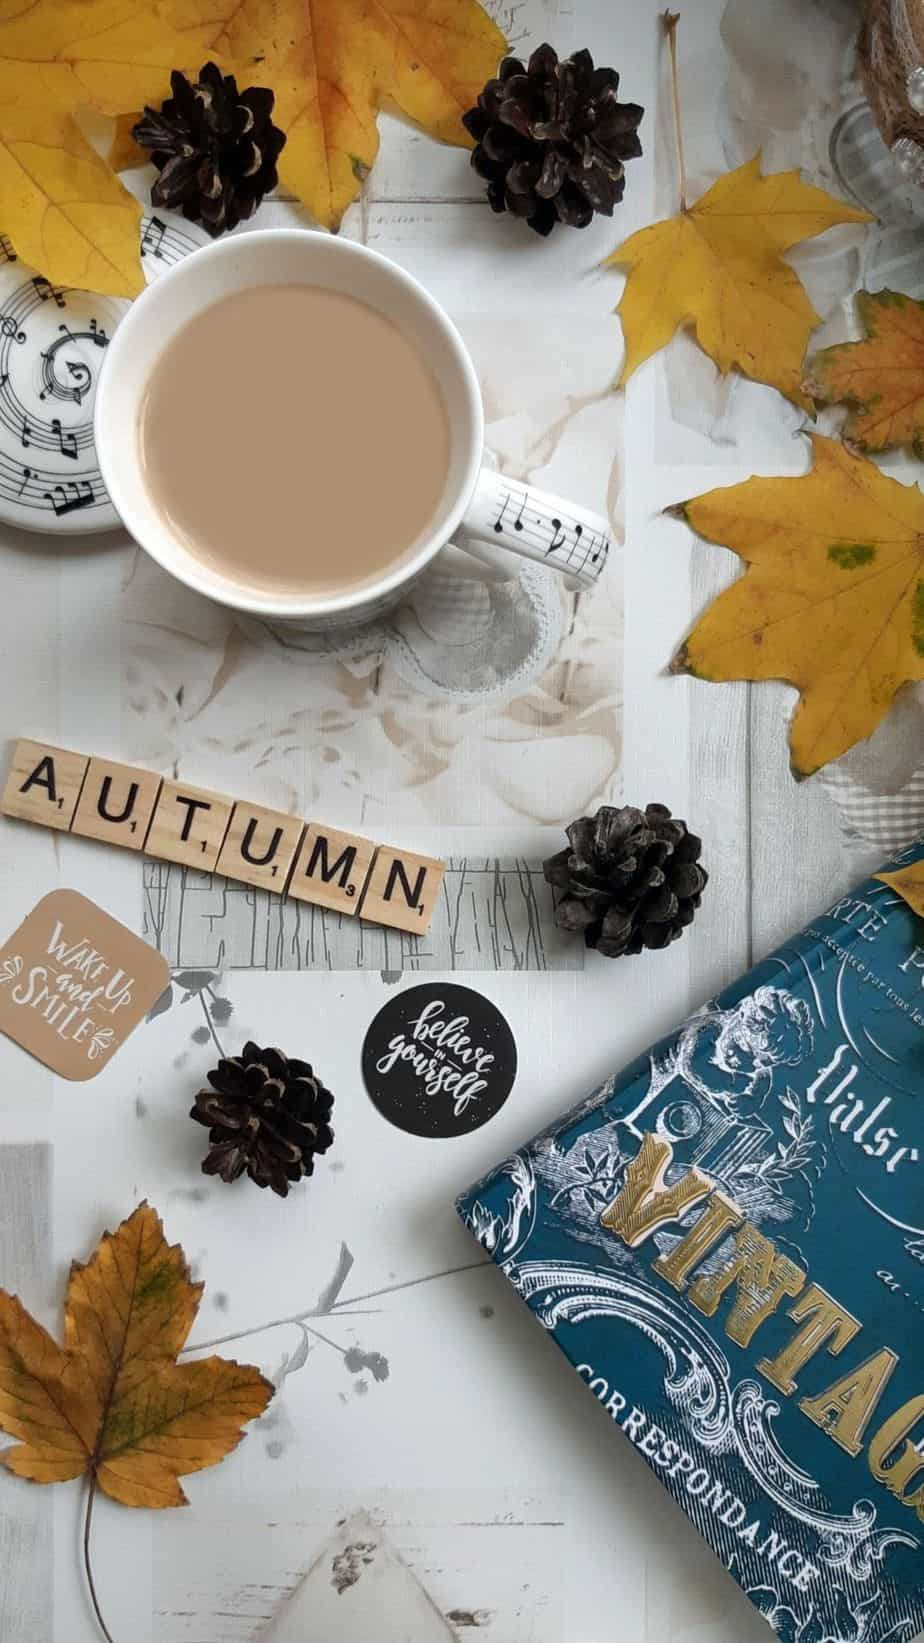 Vintage Autumn Wallpaper. You can always make your iPhone look aesthetic with cute wallpapers, these 40 beautiful and aesthetic autumn fall wallpapers for your iPhone will make you feel that autumnal fall vibes.